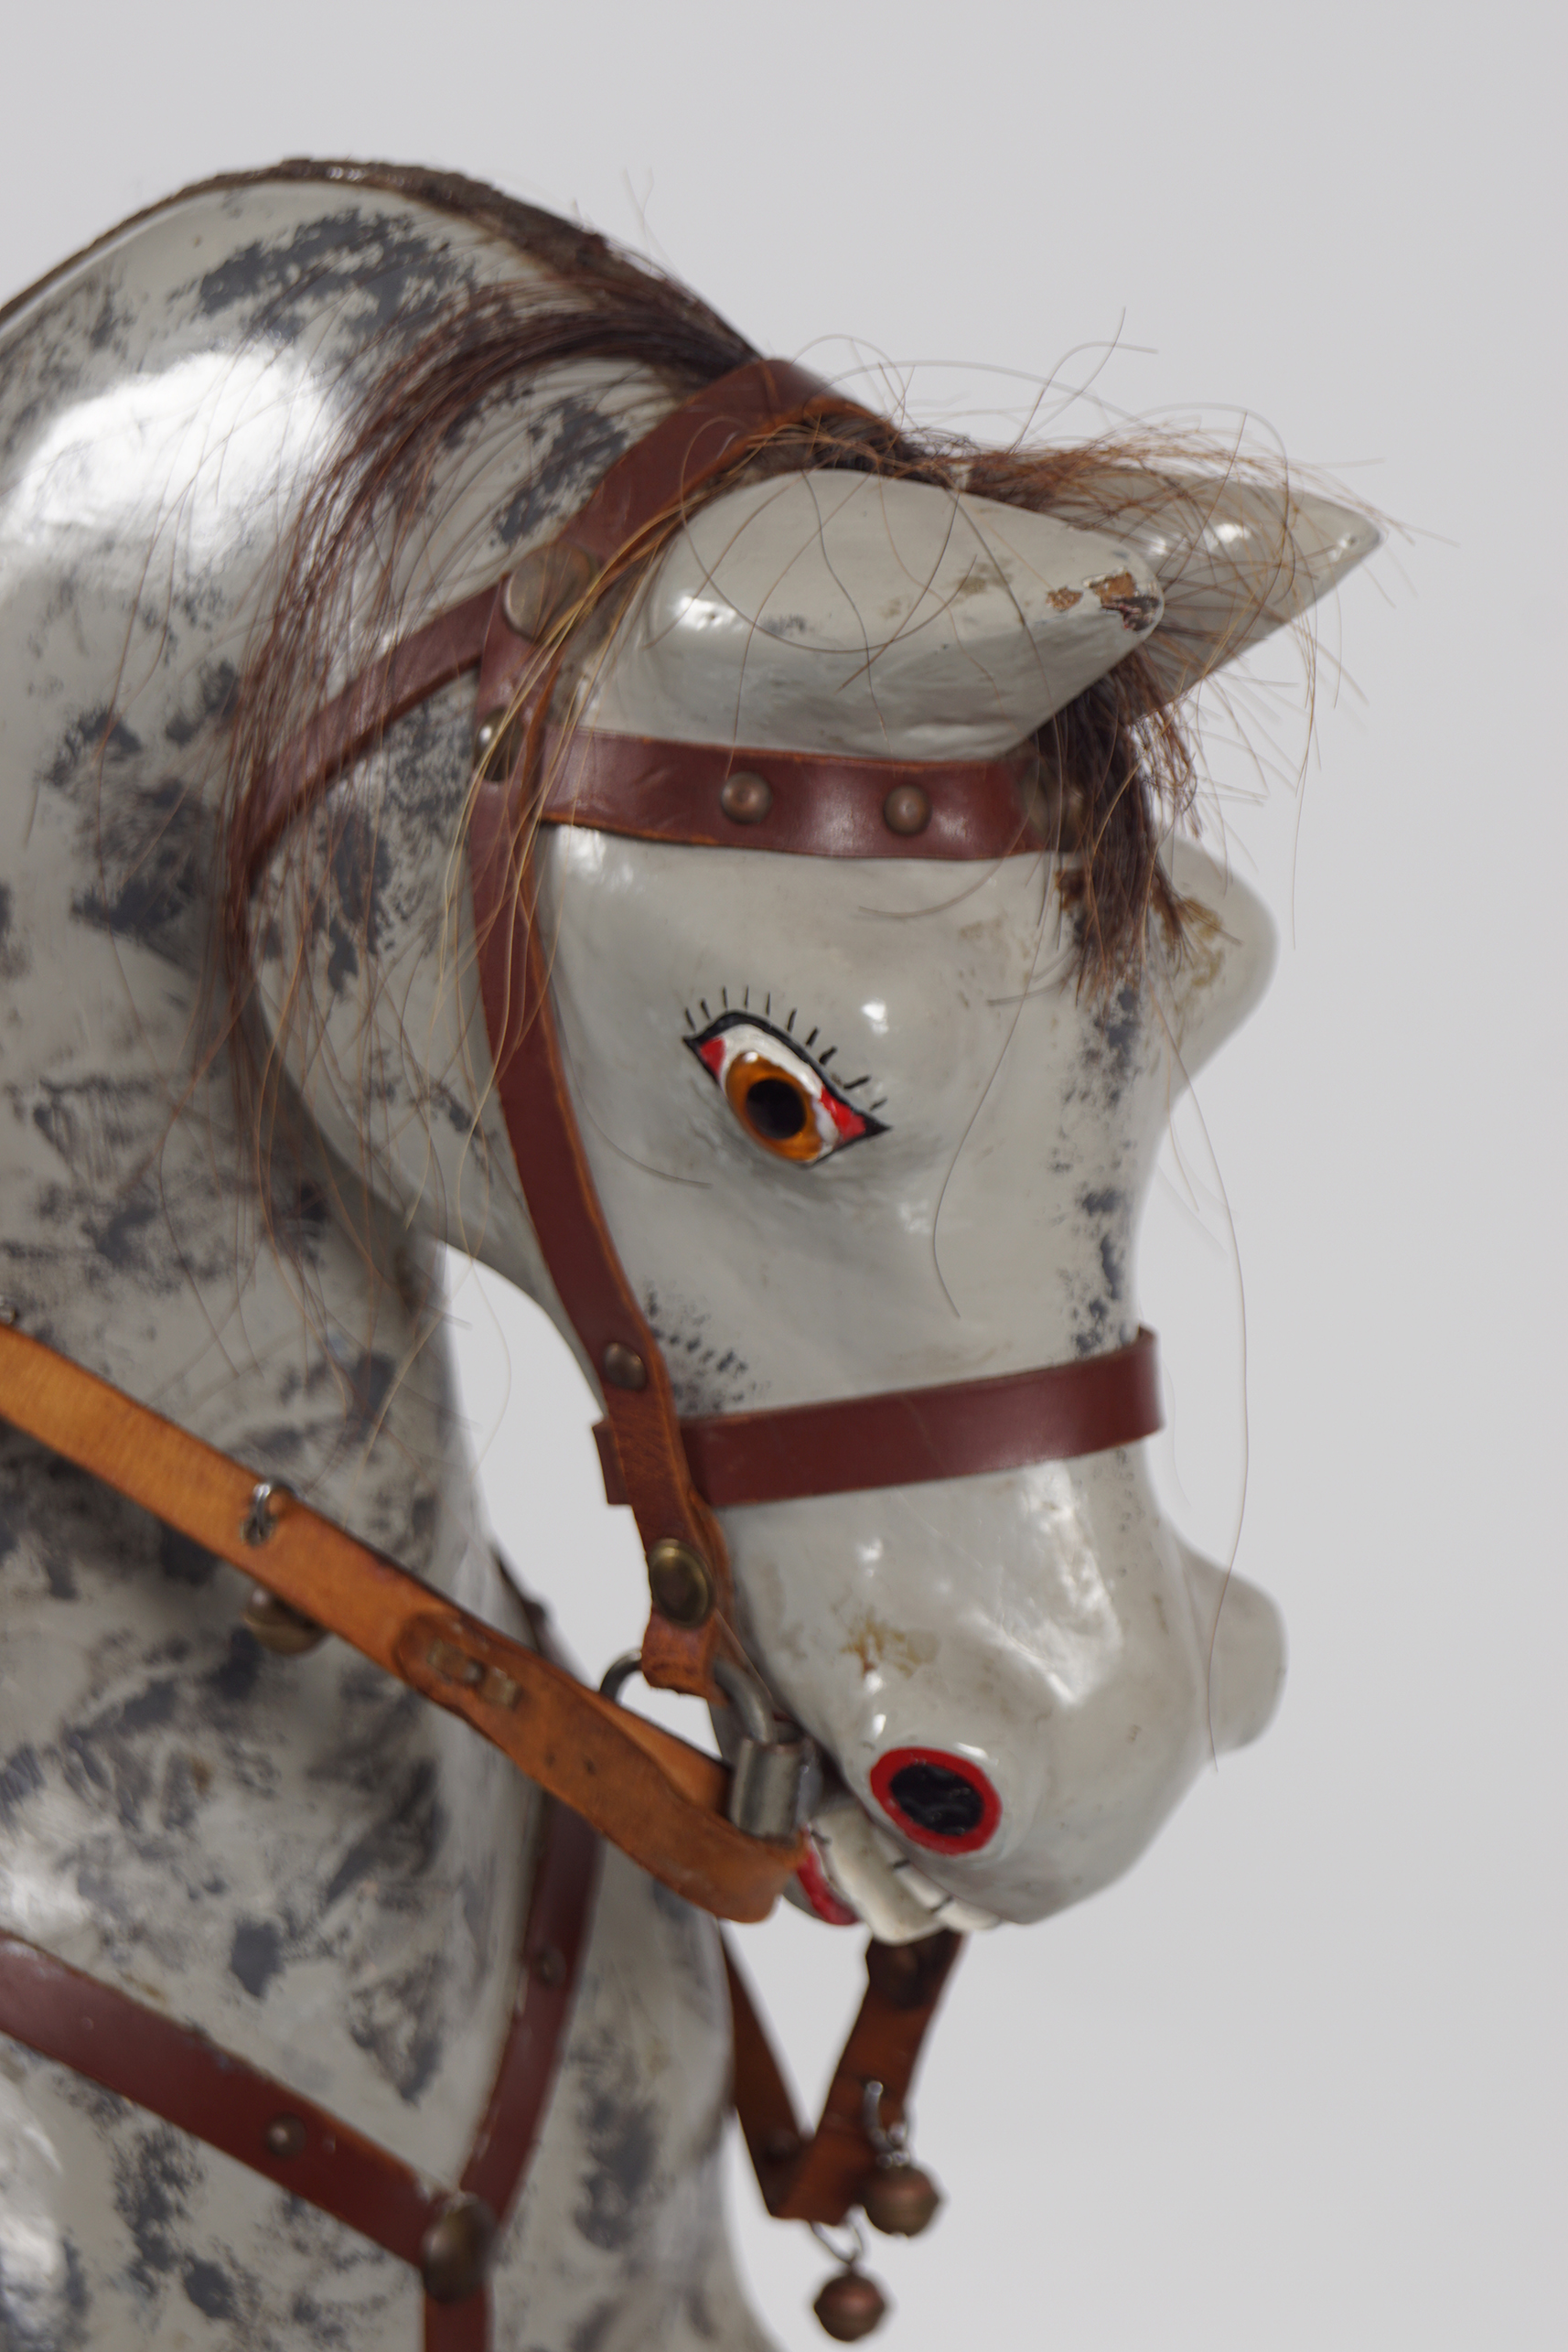 ANTIQUE POLYCHROME WOODEN ROCKING HORSE - Image 4 of 4